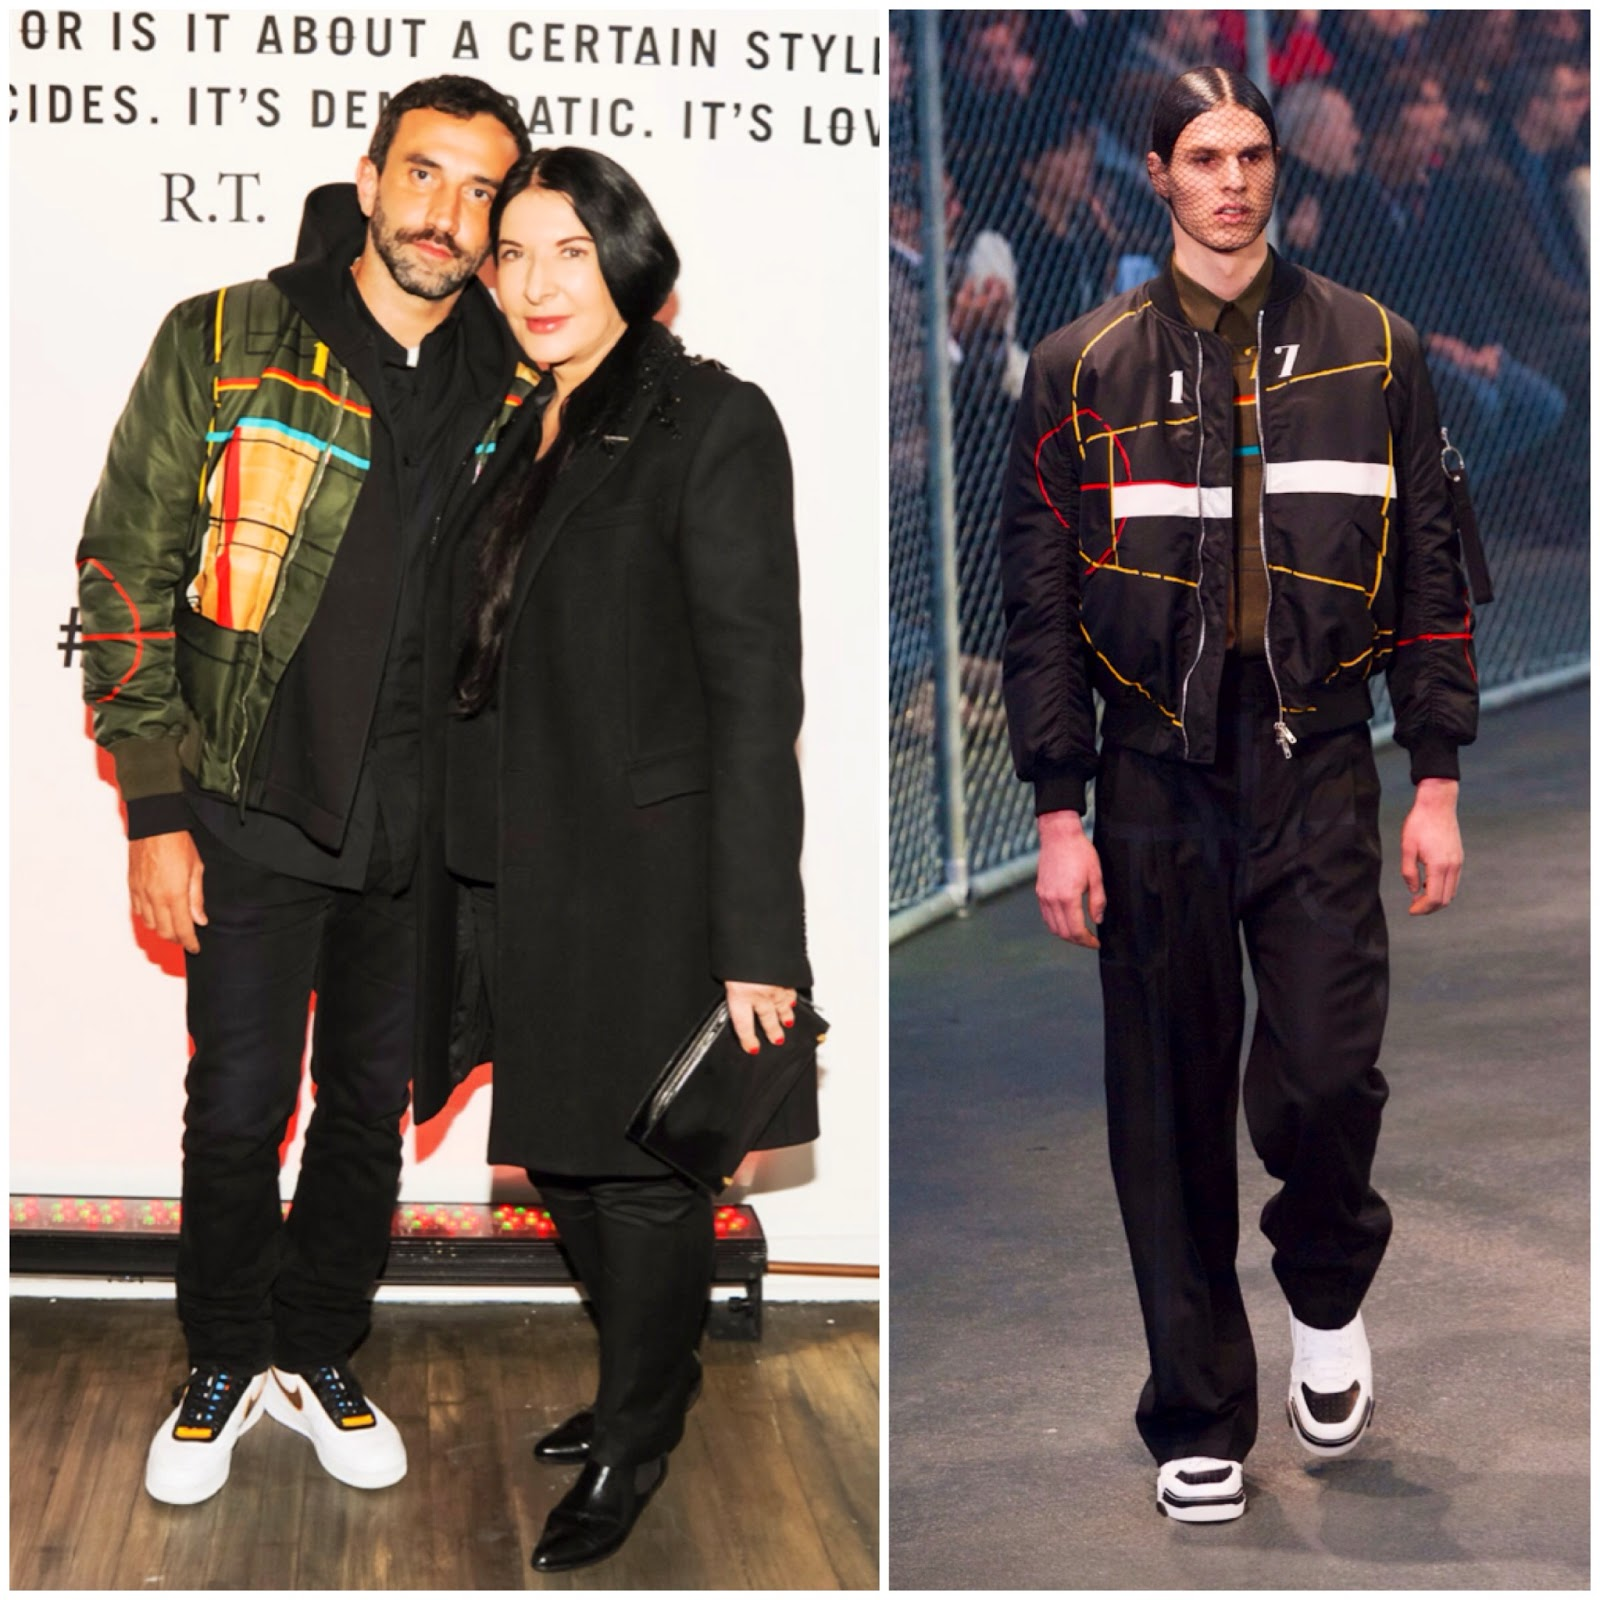 Riccardo Tisci in Givenchy - Nike + R.T. Air Force 1 Collection Launch Party